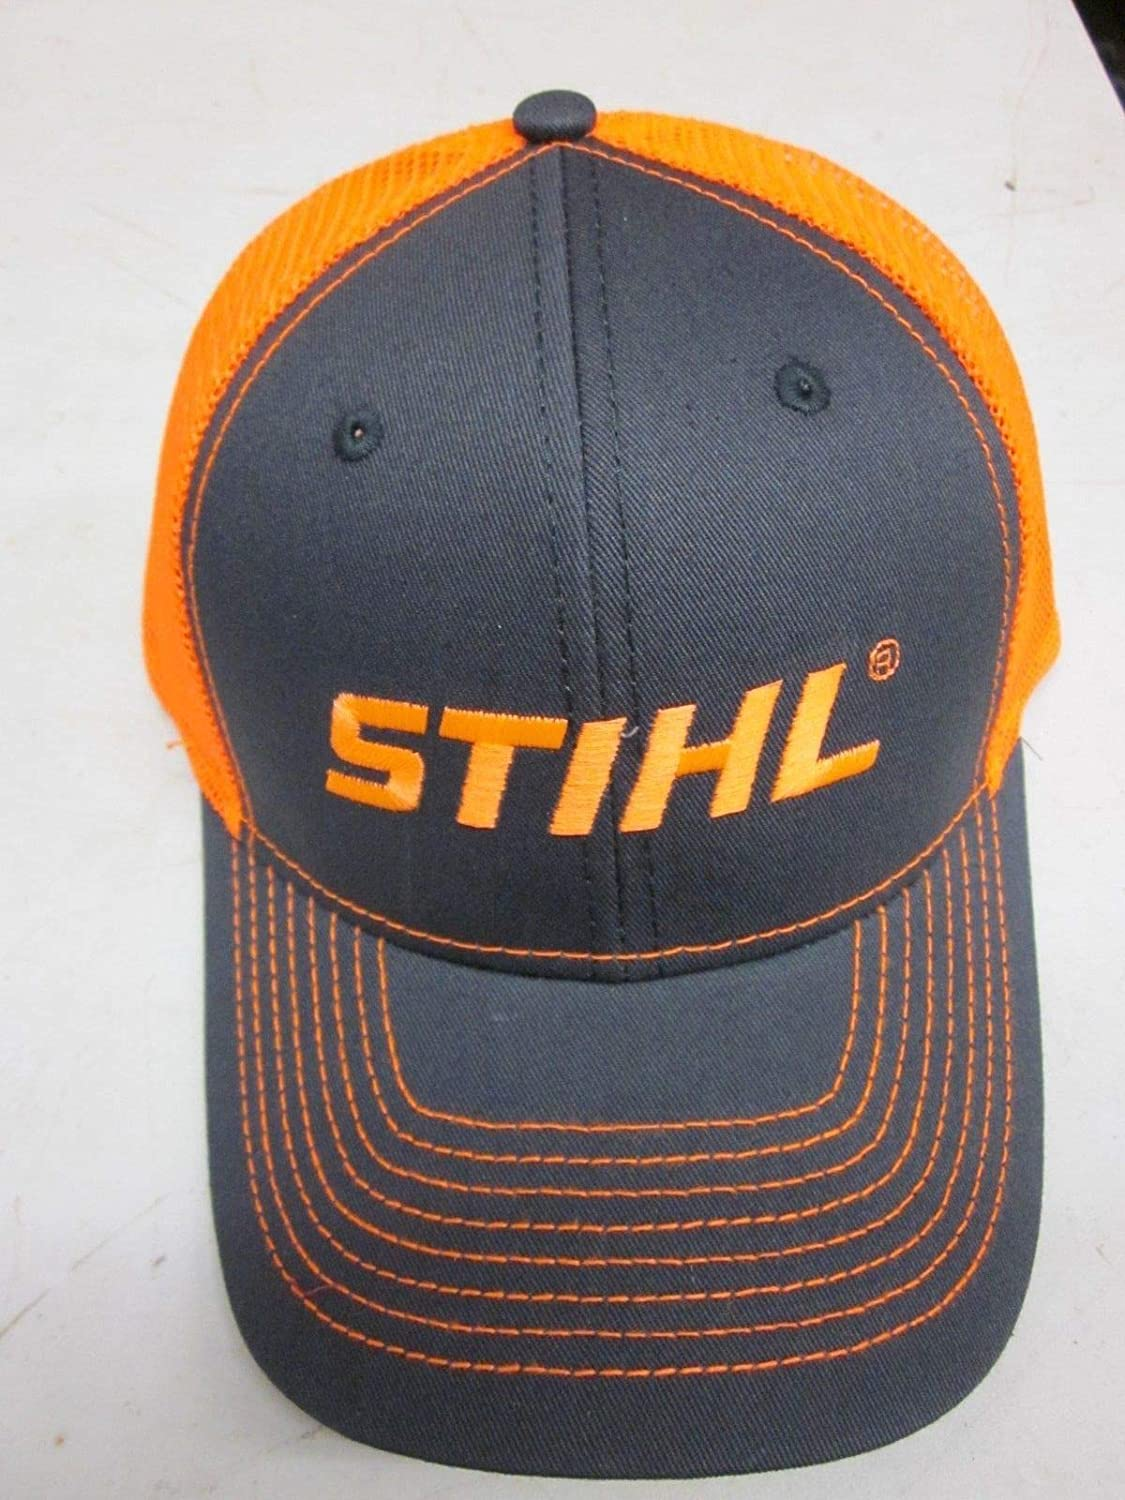 20ae0b66d Amazon.com: Stihl Officially Licensed Chainsaw Neon Mesh Back Cap ...